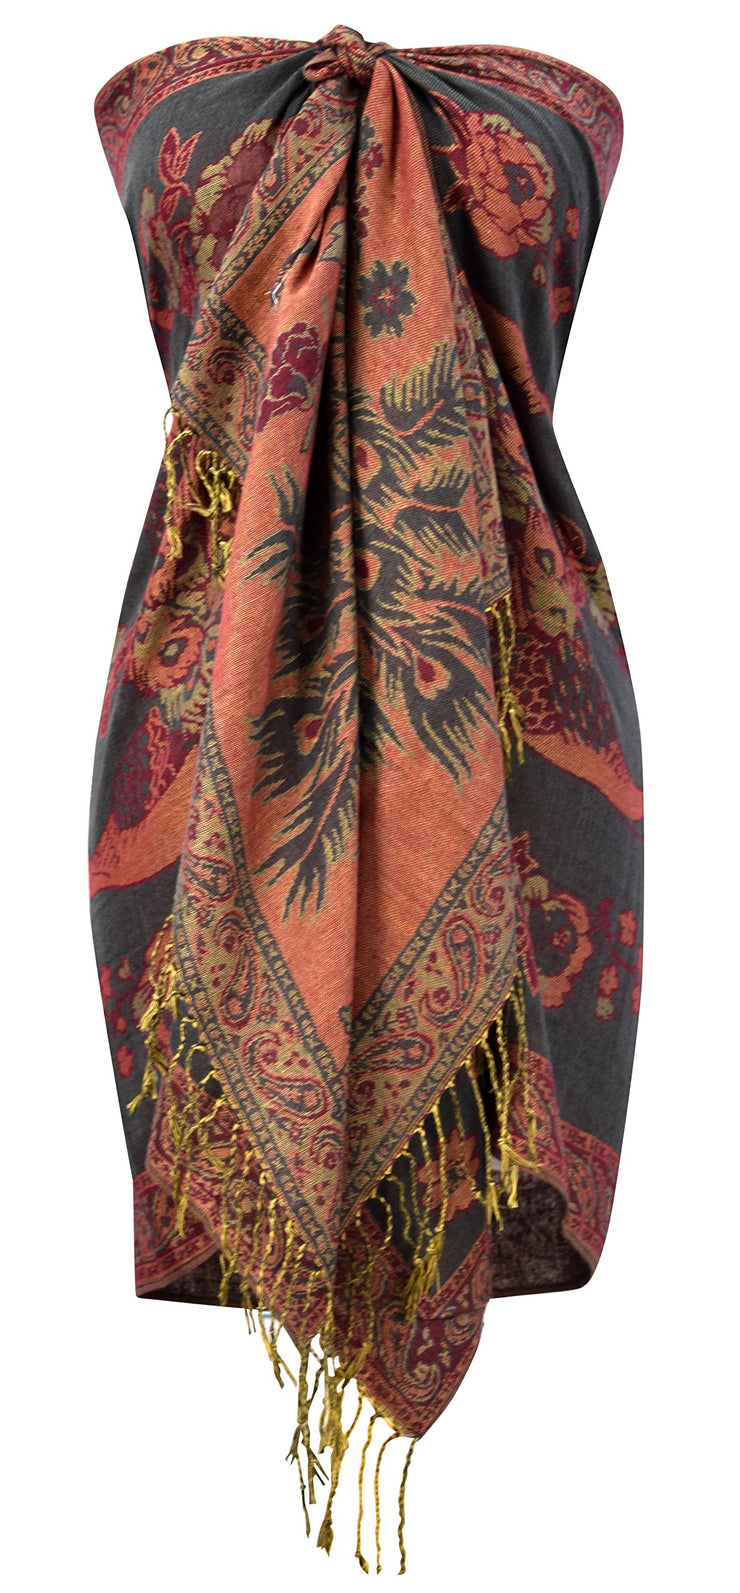 Peacock Reversible Floral Shimmer Layered Pashmina Wrap Shawl Scarf